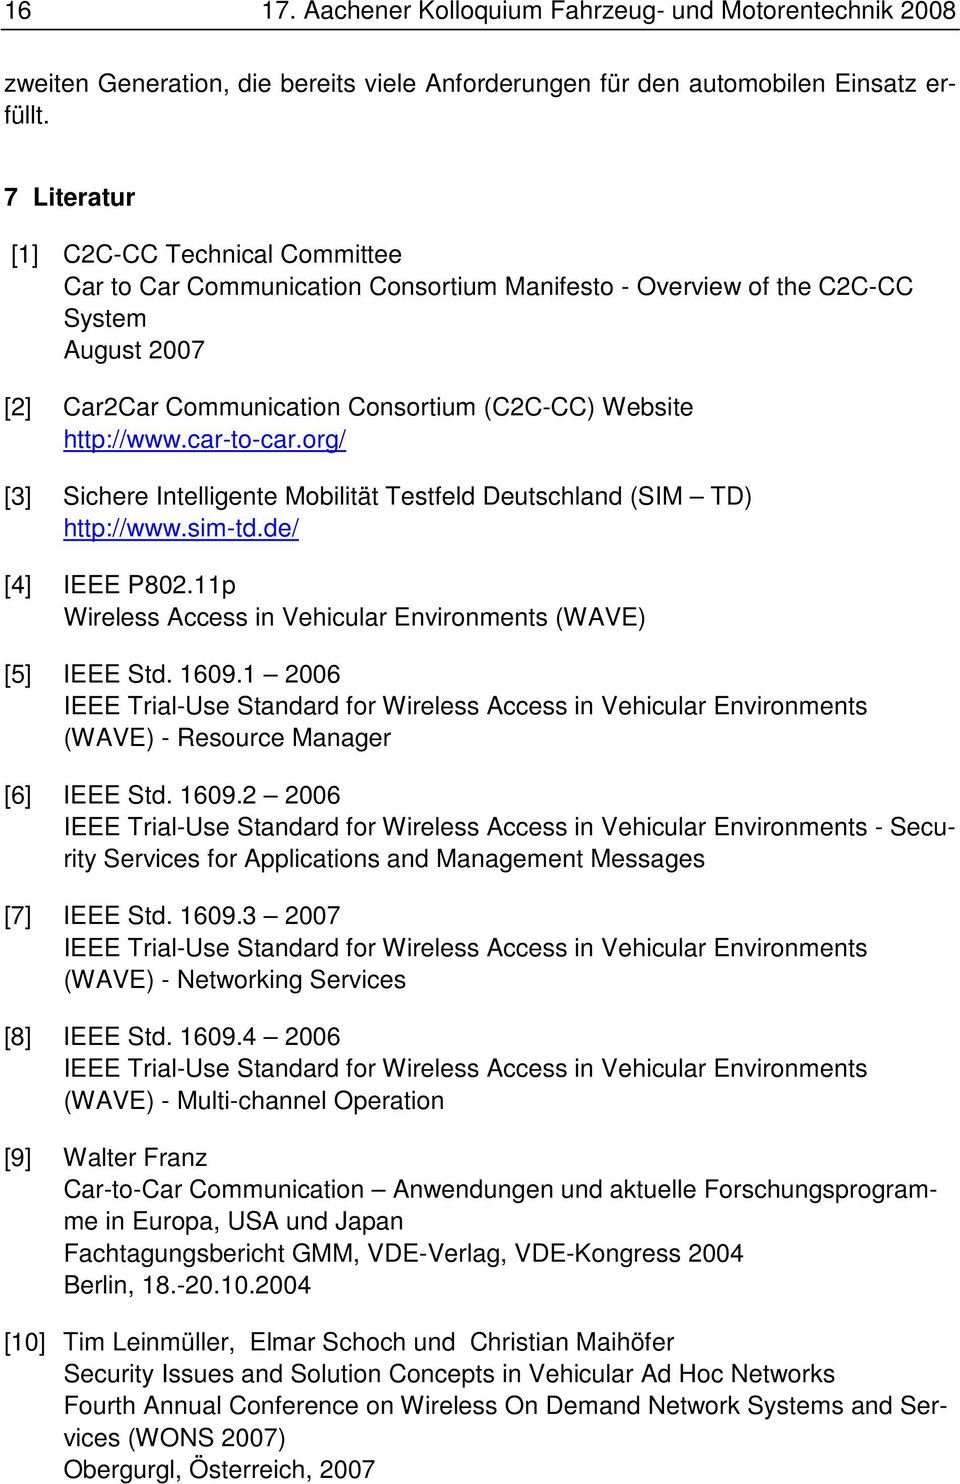 car-to-car.org/ [3] Sichere Intelligente Mobilität Testfeld Deutschland (SIM TD) http://www.sim-td.de/ [4] IEEE P802.11p Wireless Access in Vehicular Environments (WAVE) [5] IEEE Std. 1609.